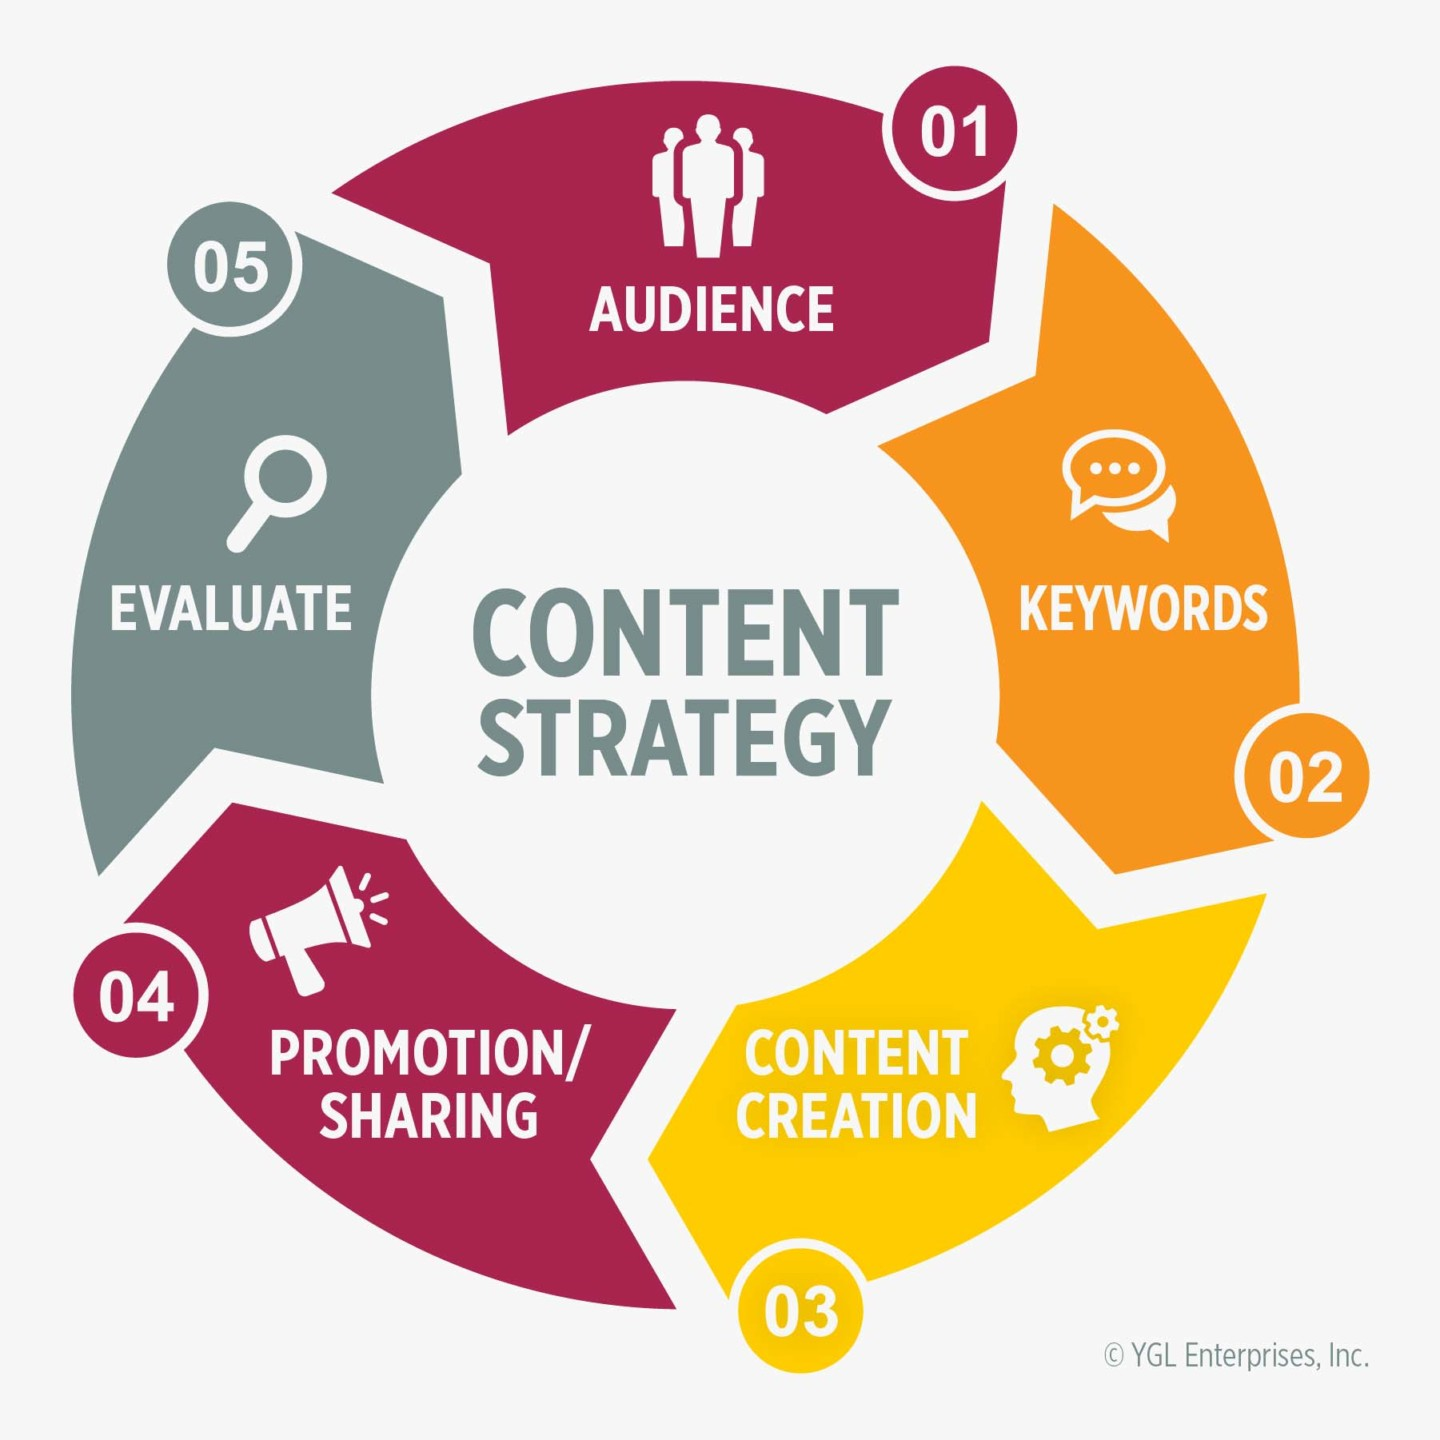 audience, keywords, content, promotion, evaluate